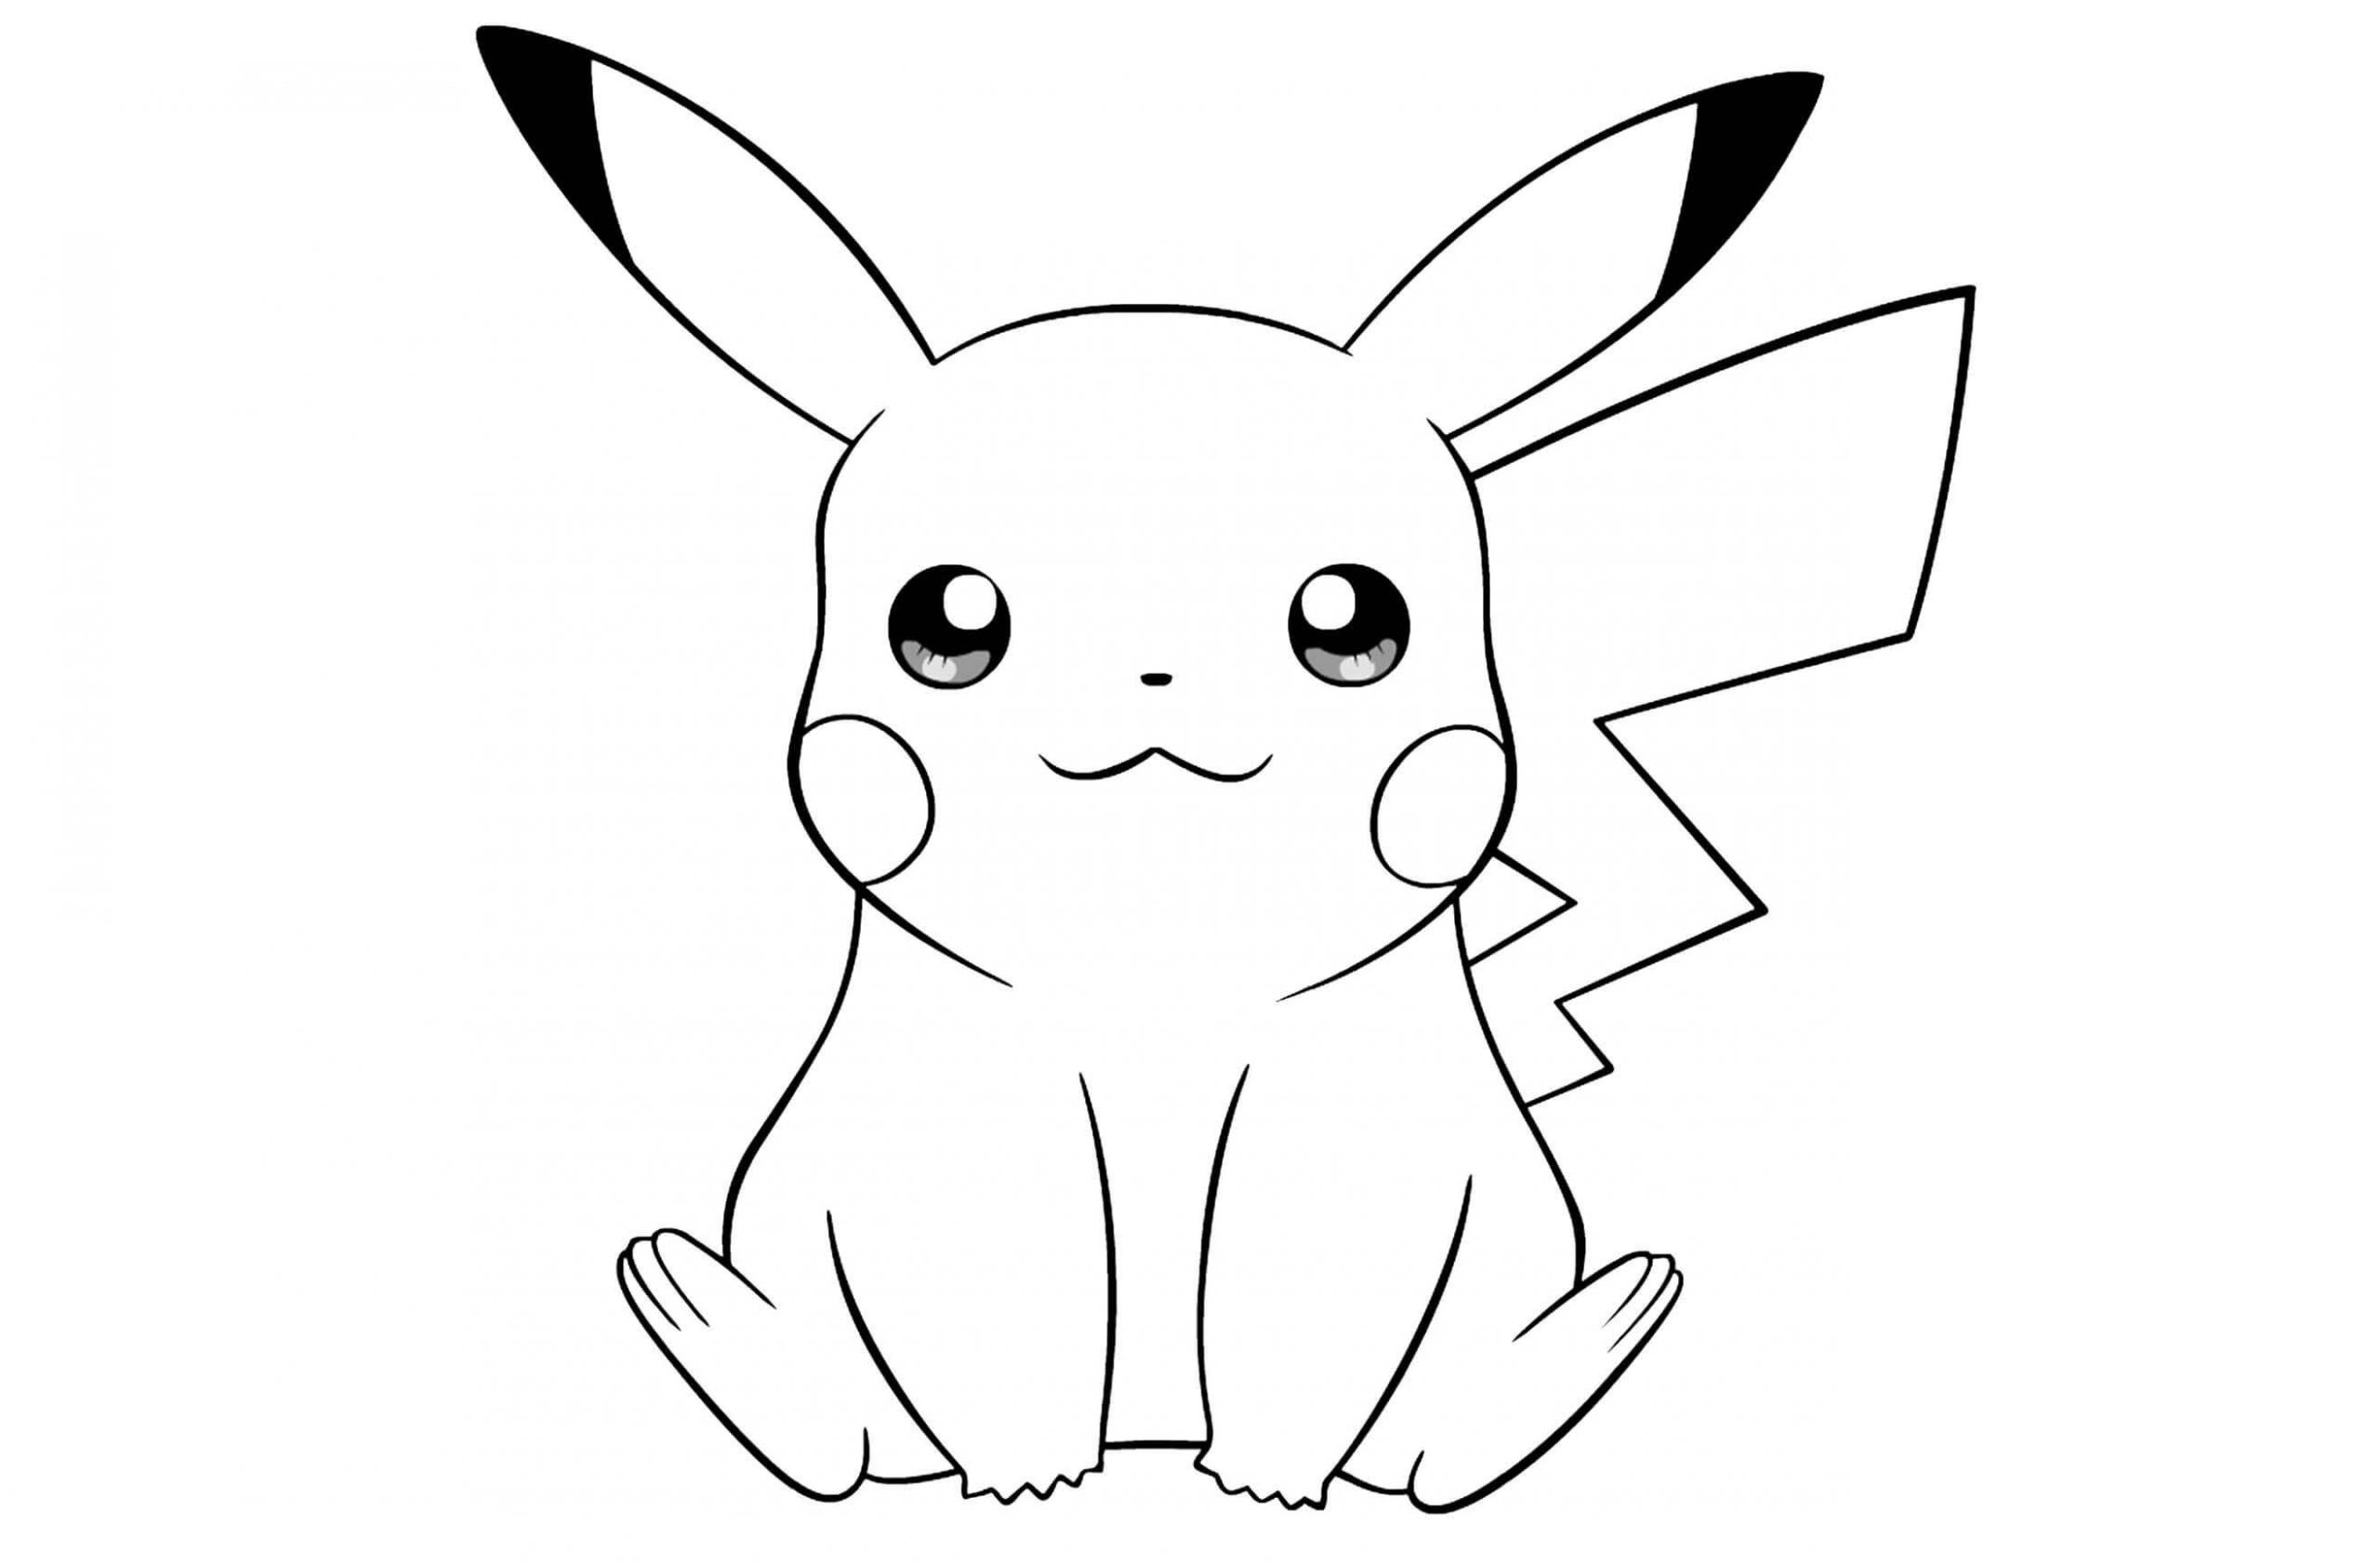 cute adorable pikachu coloring pages pikachu coloring pages to download and print for free pikachu pages cute coloring adorable